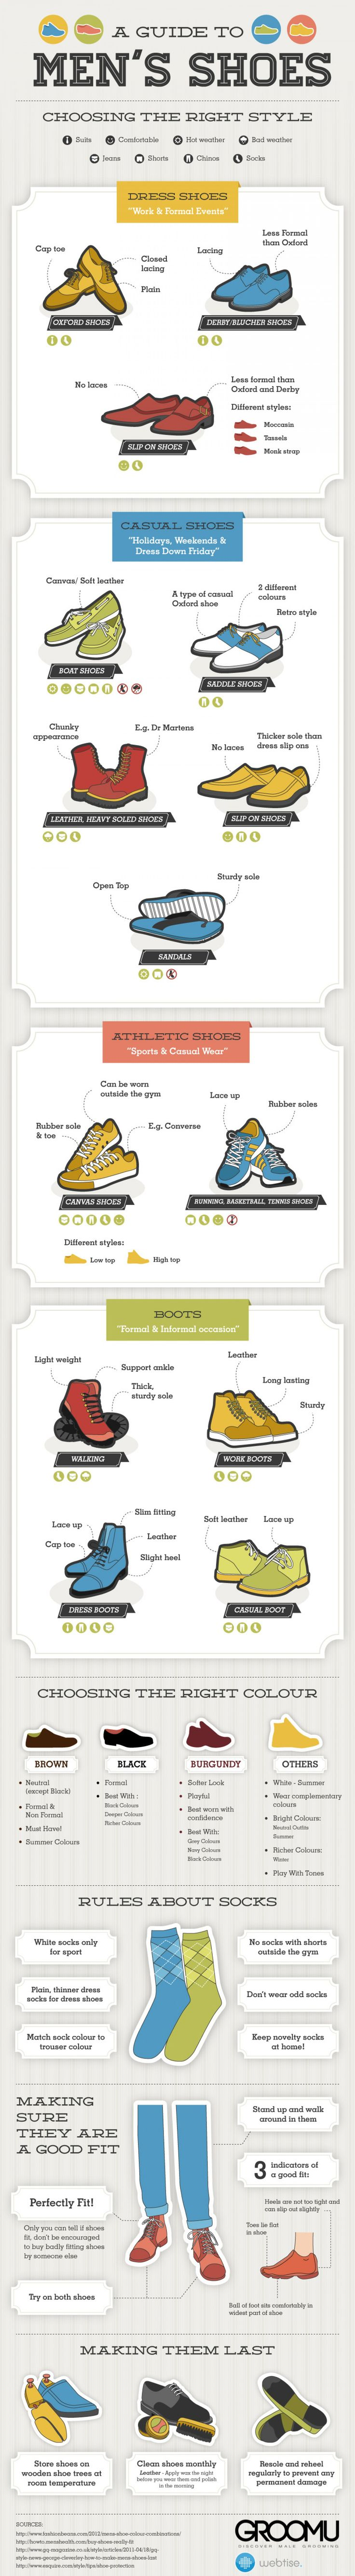 A Guide To Men's Shoes Infographic